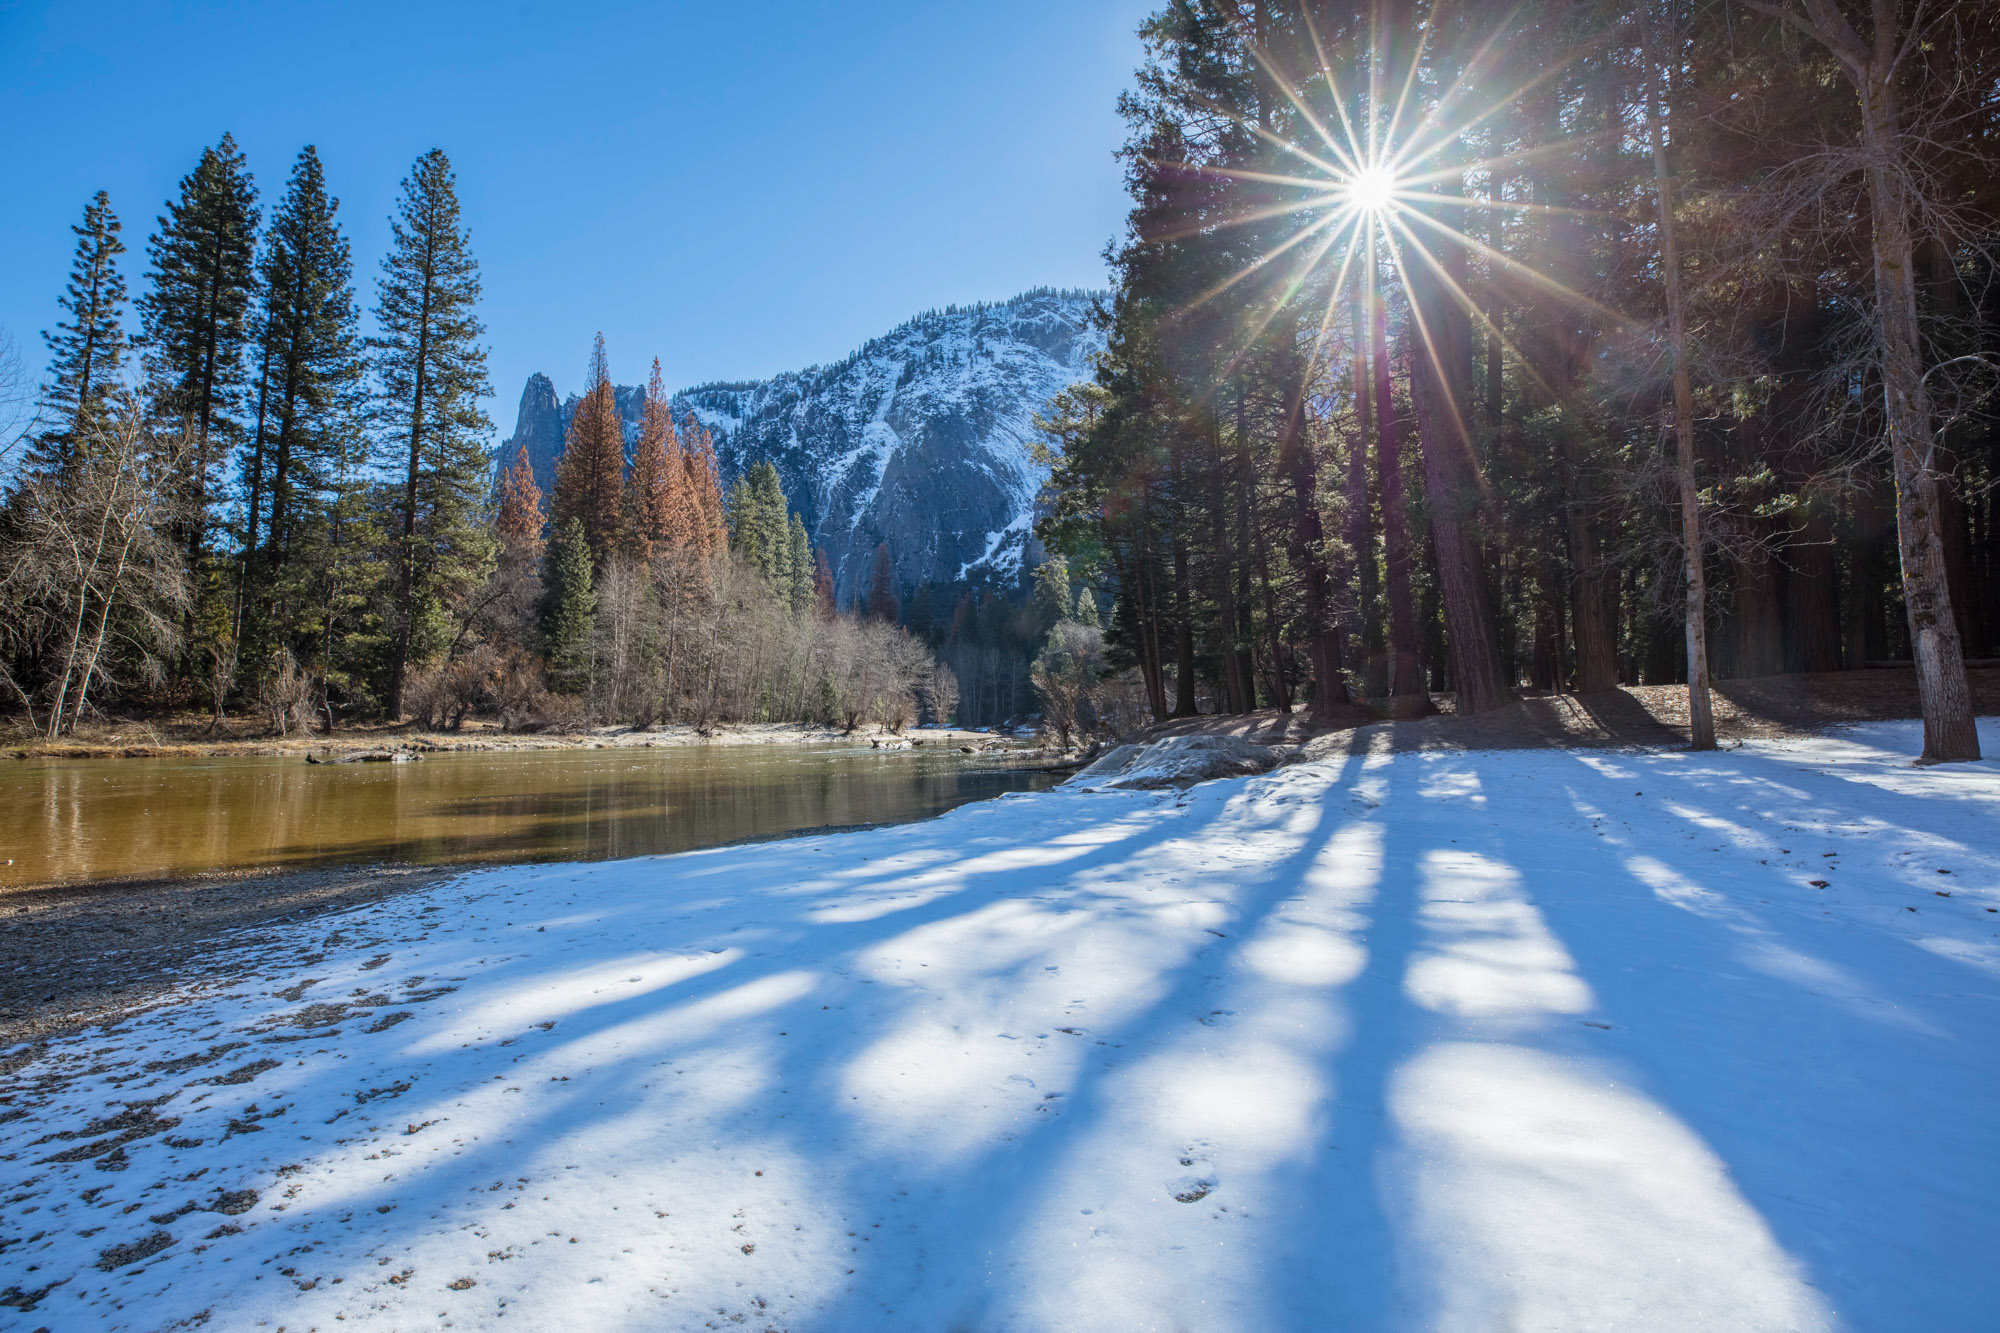 Light shining through the trees in Winter at Yosemite National Park, USA